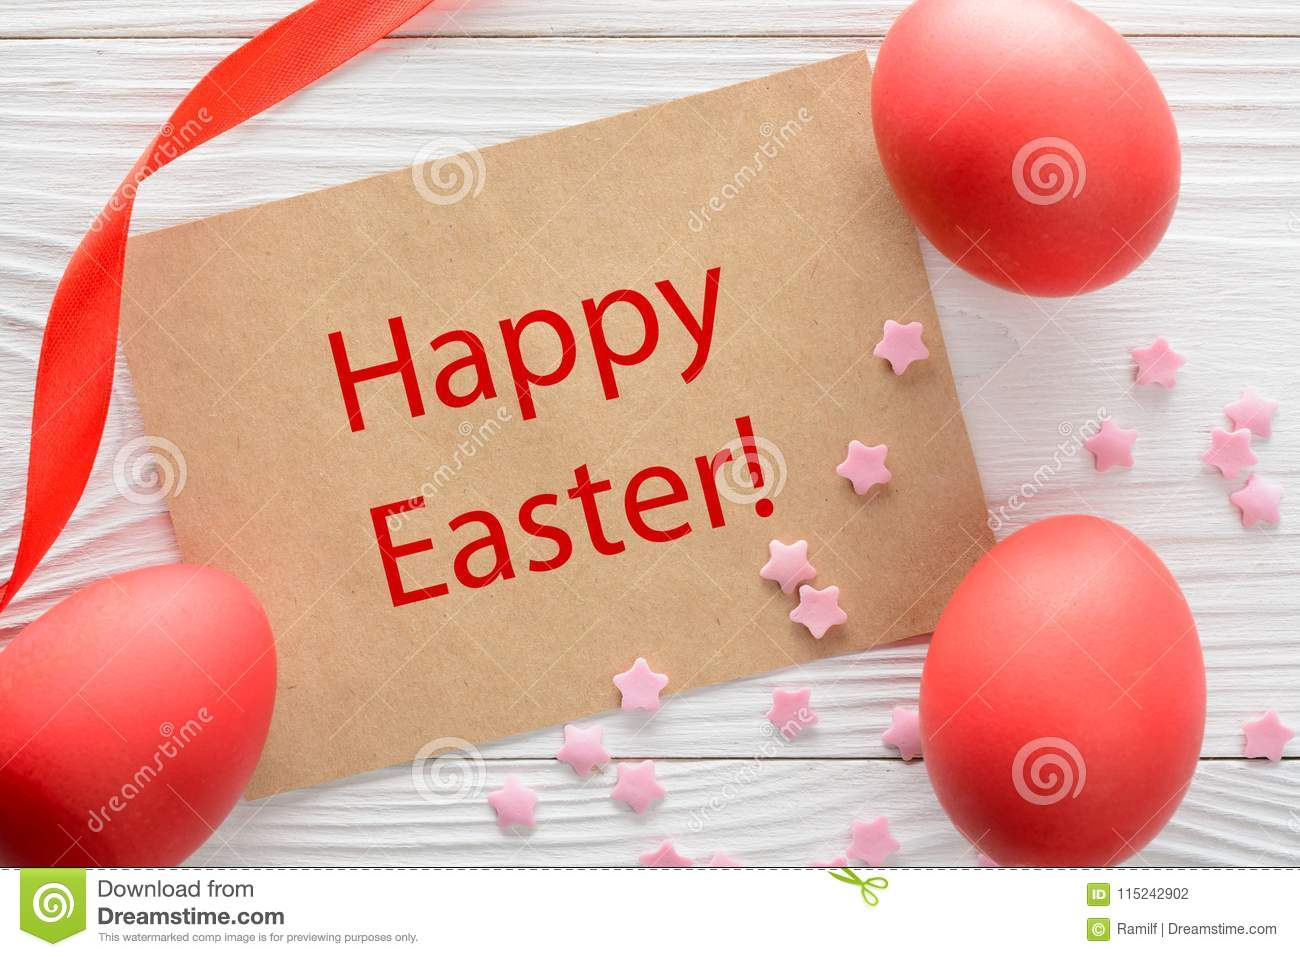 Happy Easter greeting card and colorful eggs on the wooden table. Top view